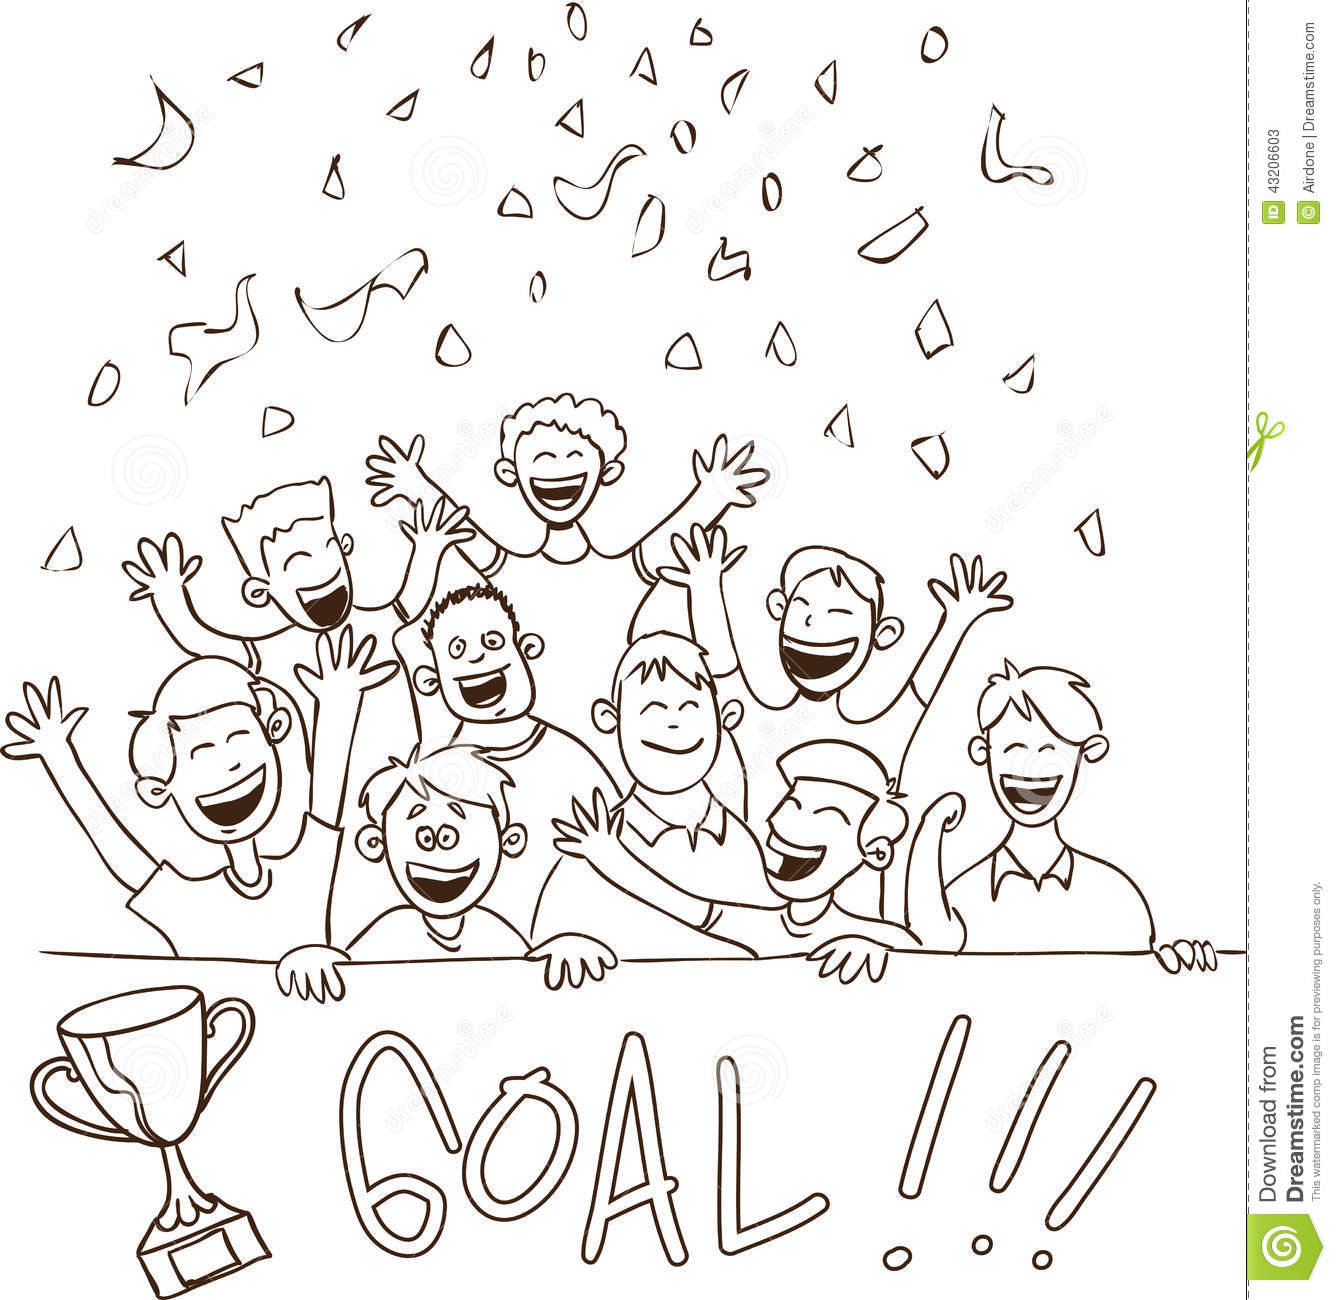 Happy Football Supporters Doodle